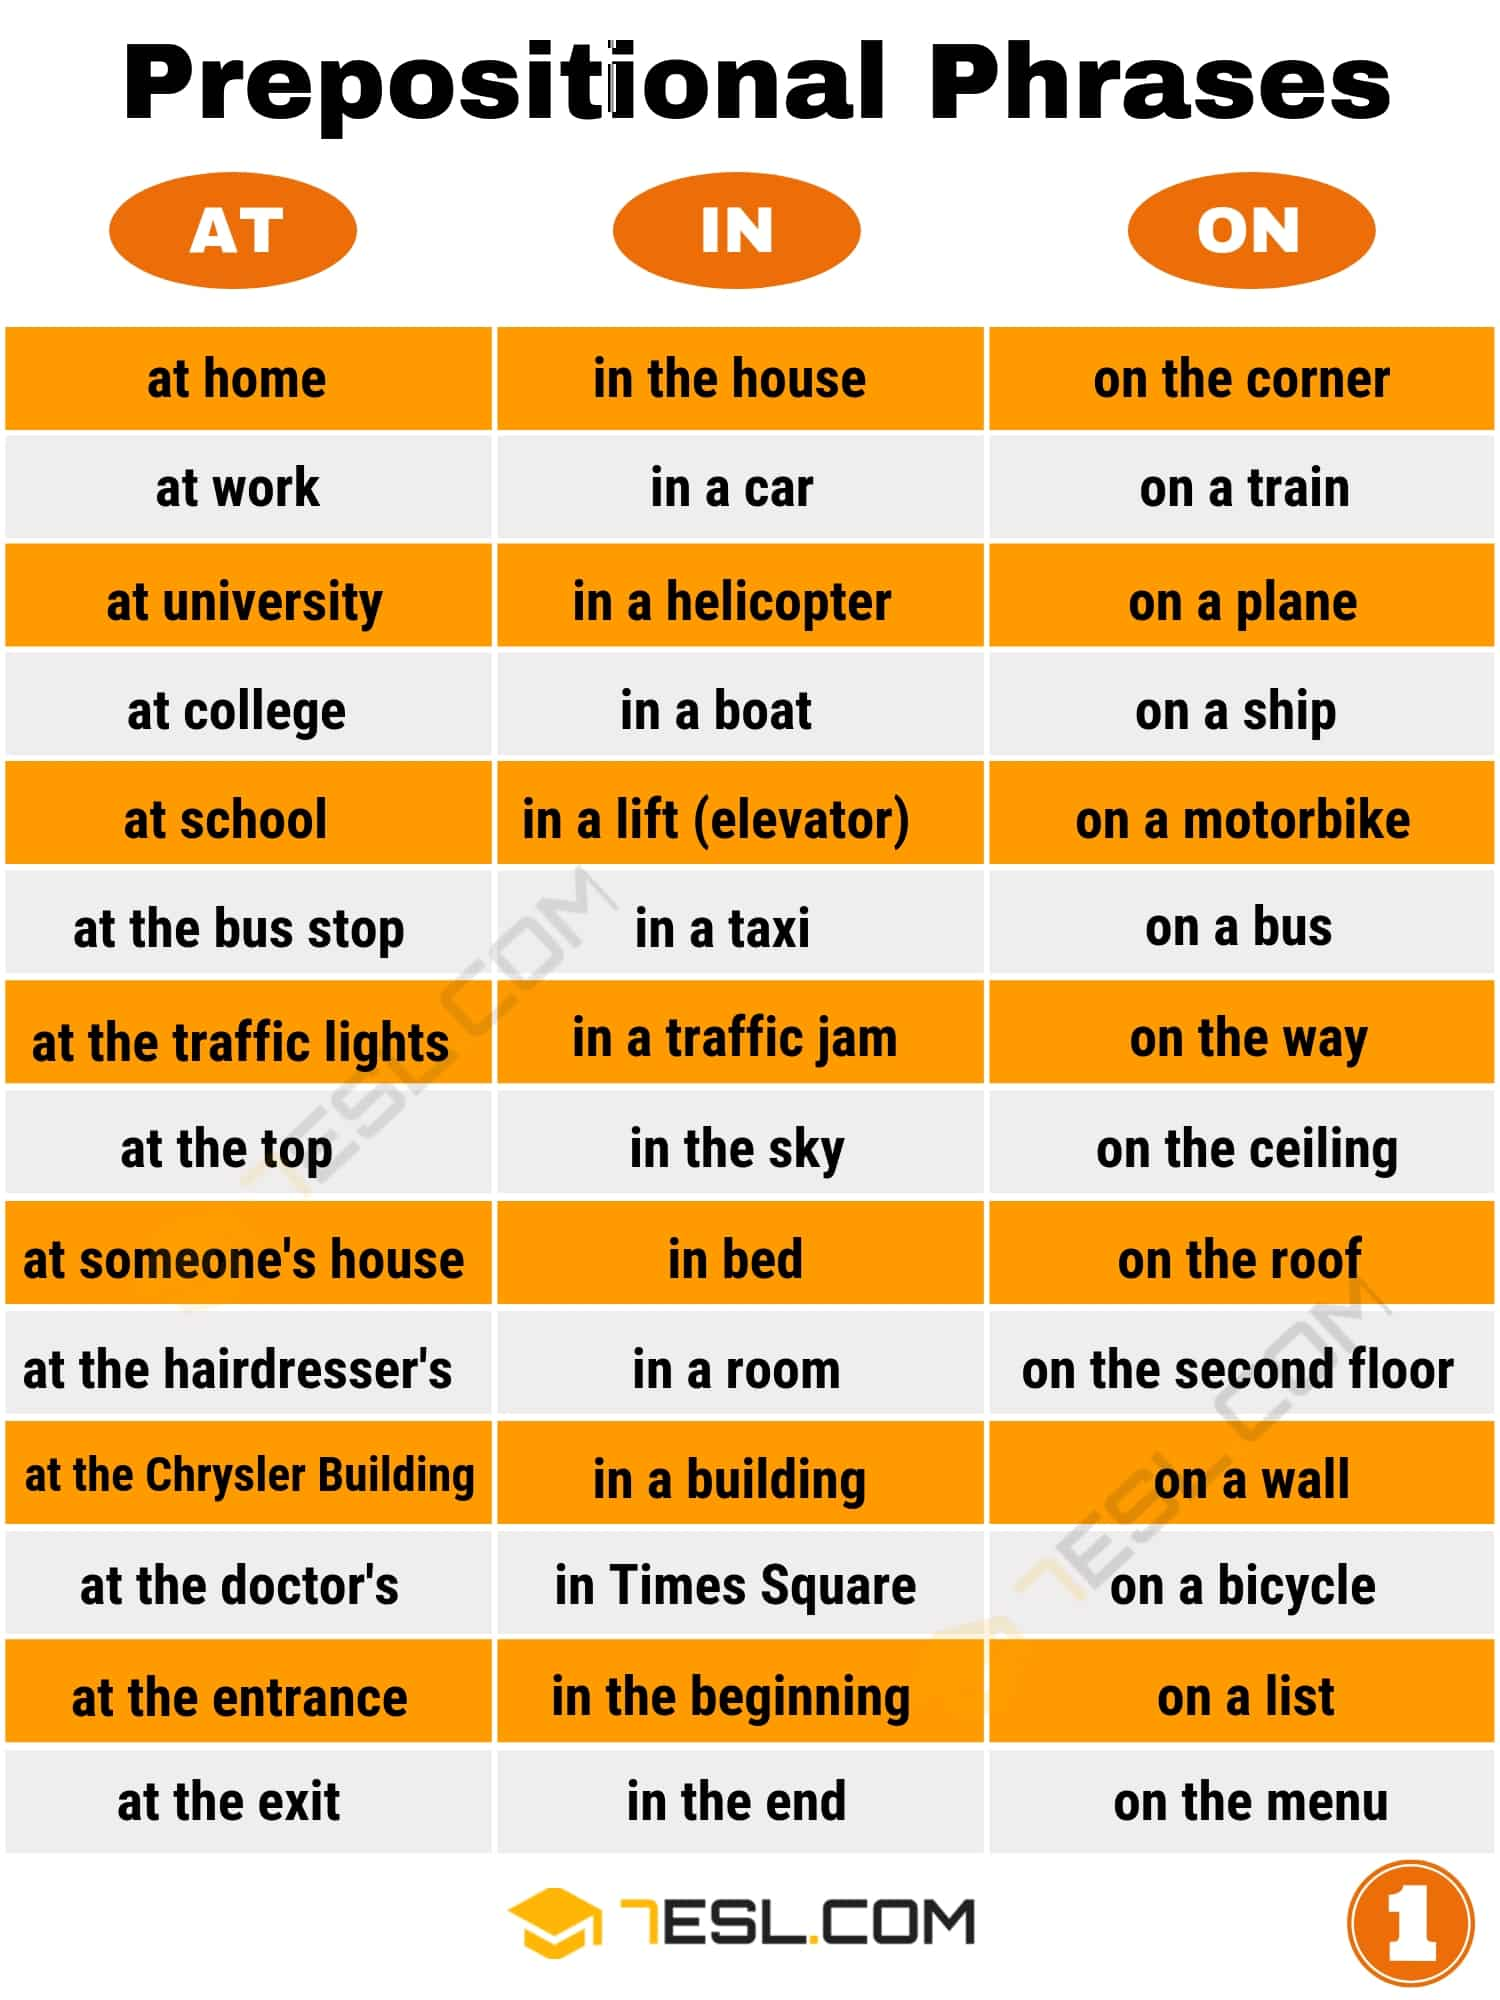 Preposition examples | Image